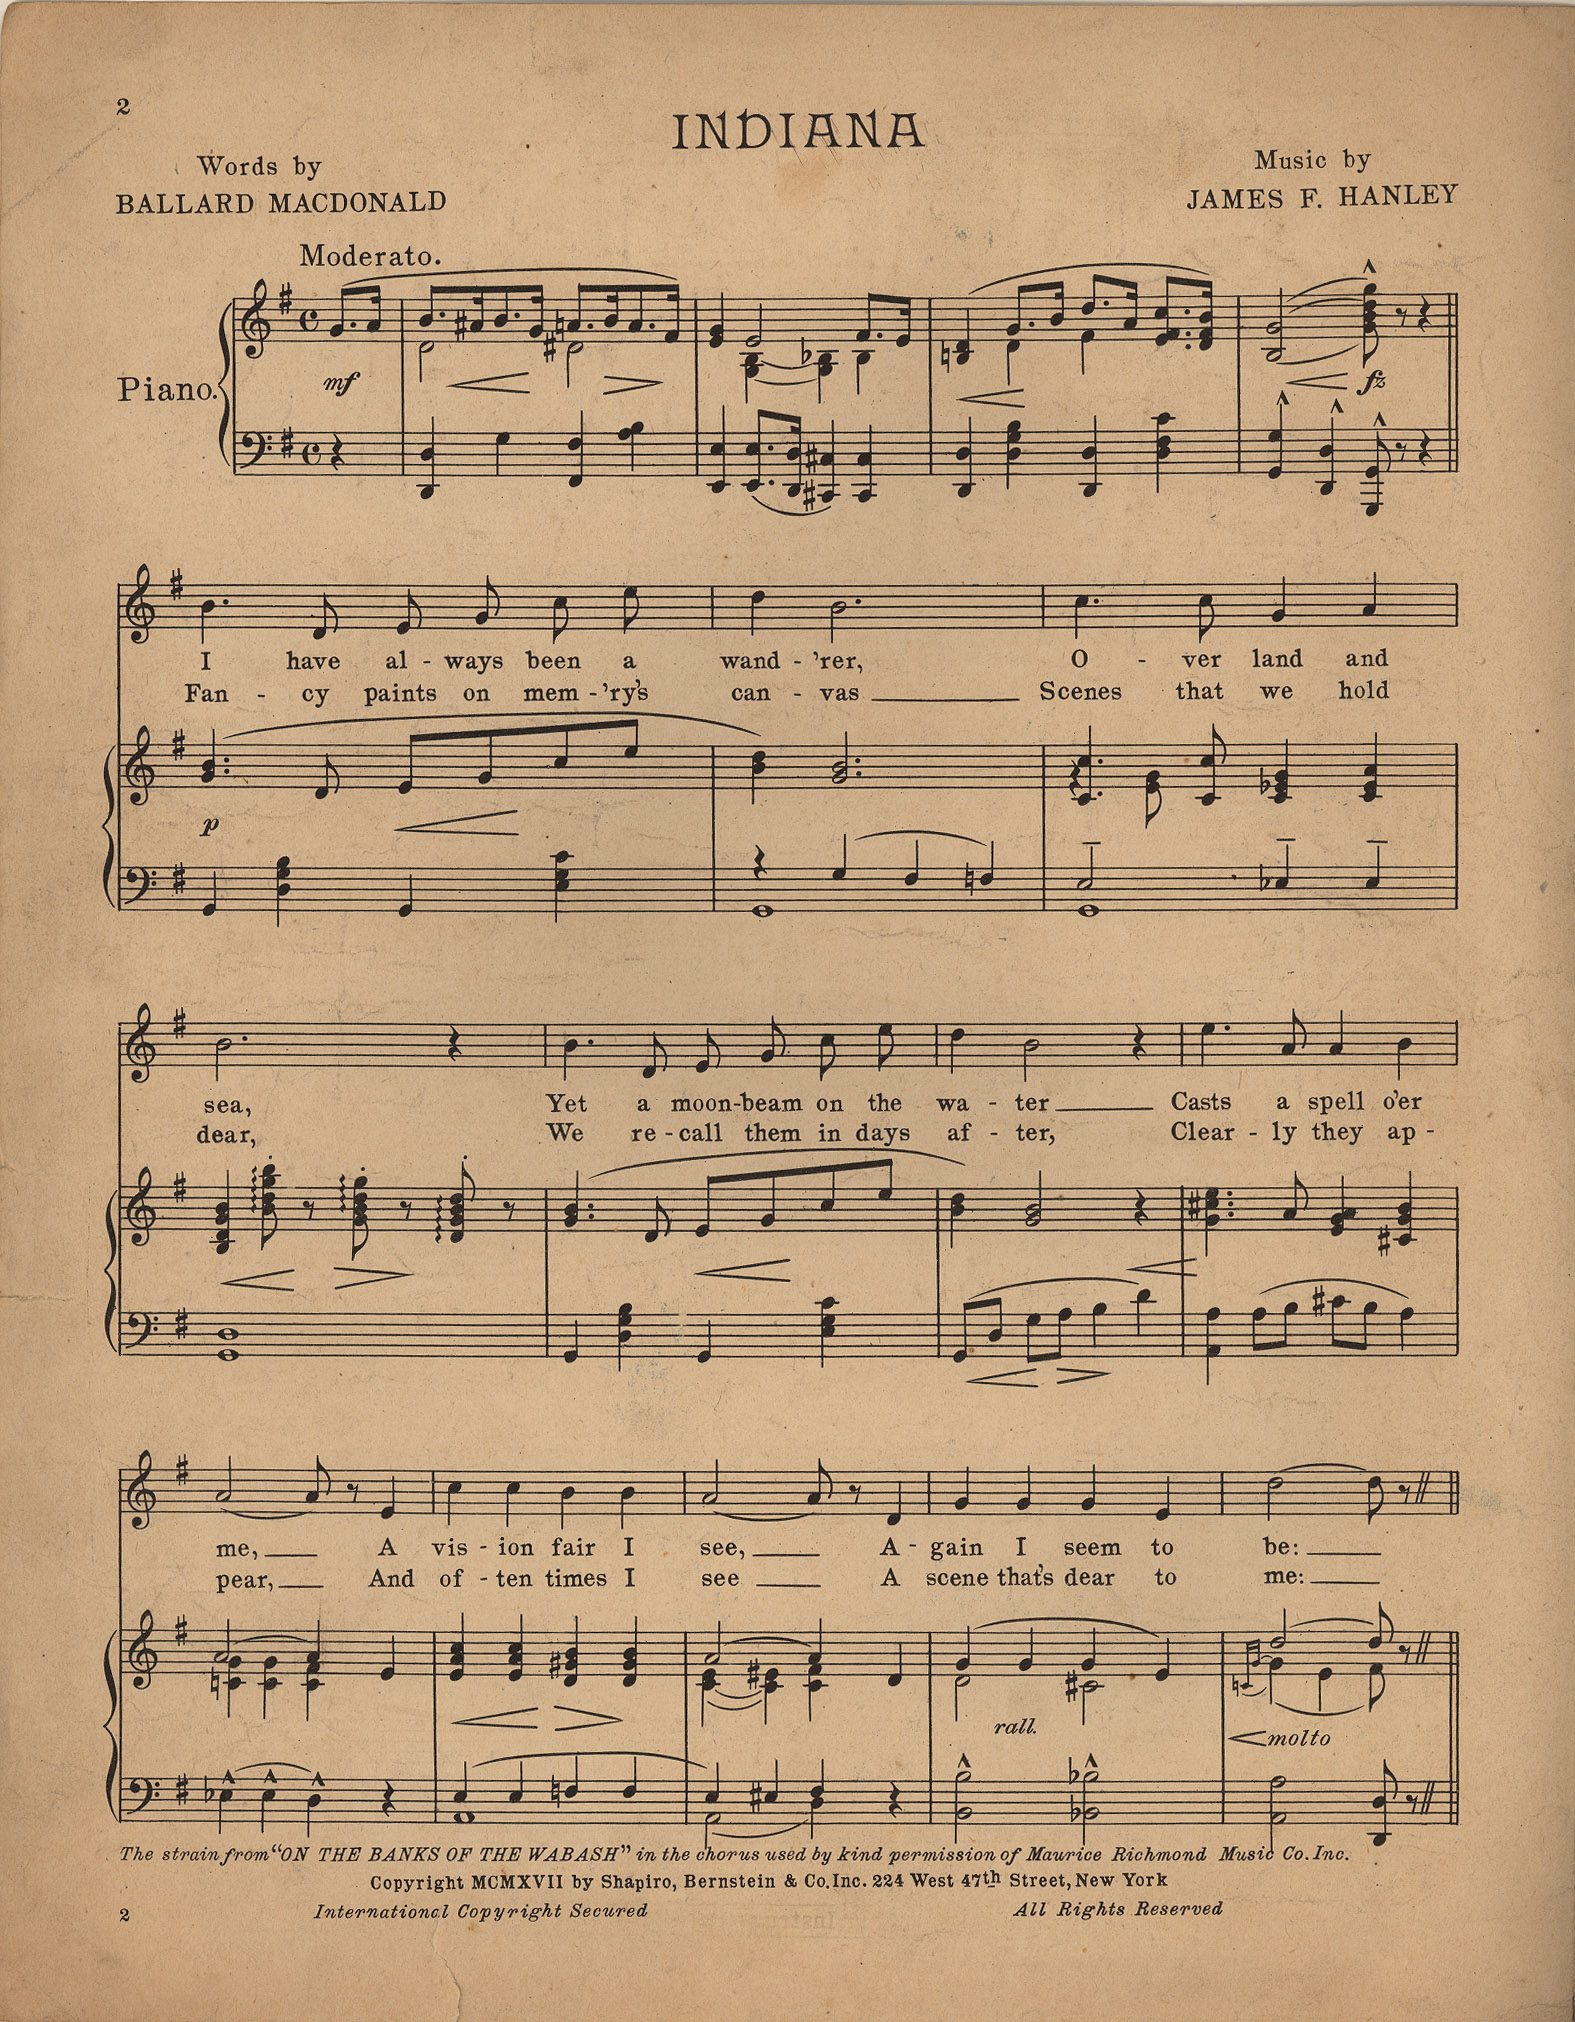 Indiana On The Banks Of The Wabash Historic American Sheet Music